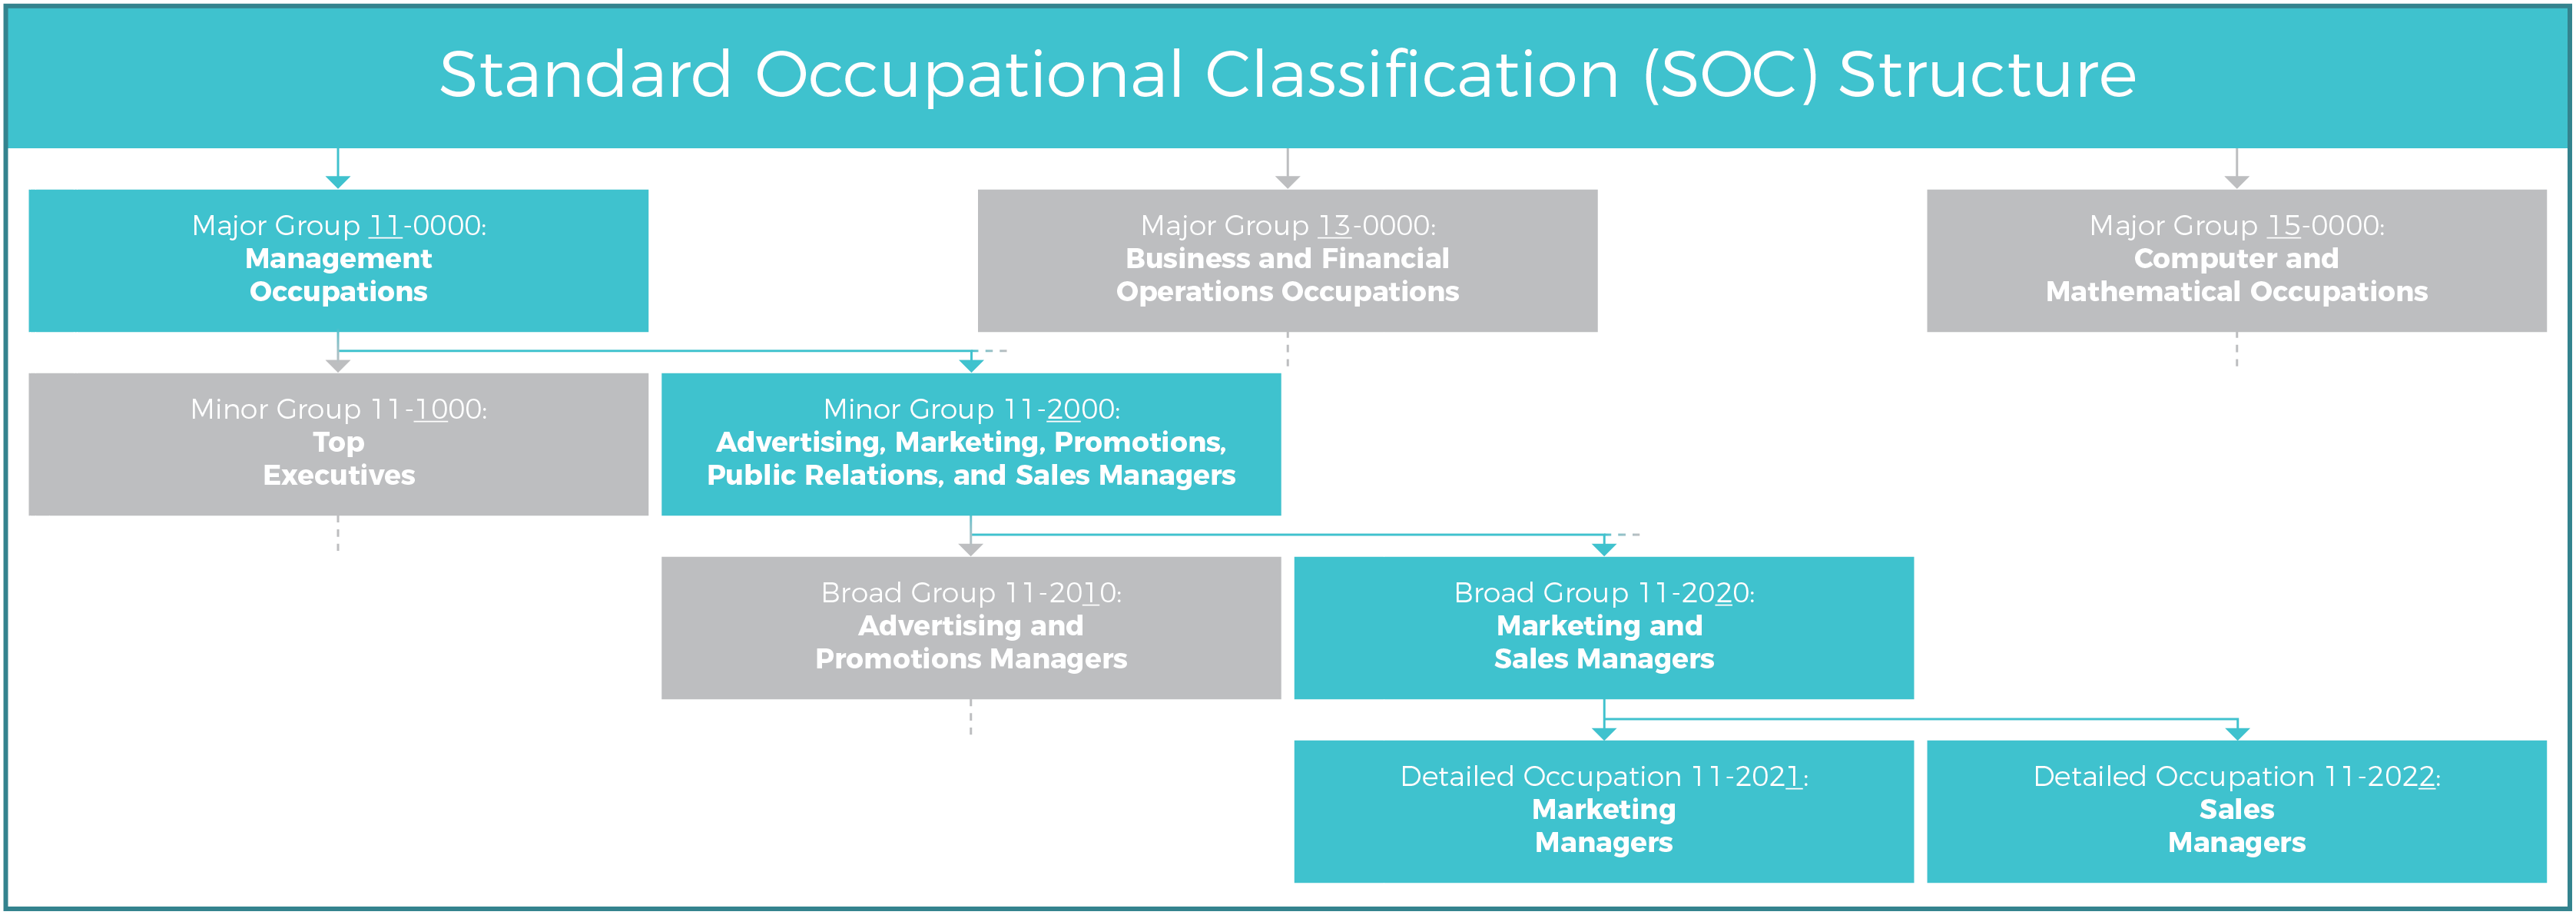 Standard Occupational Classification Structure